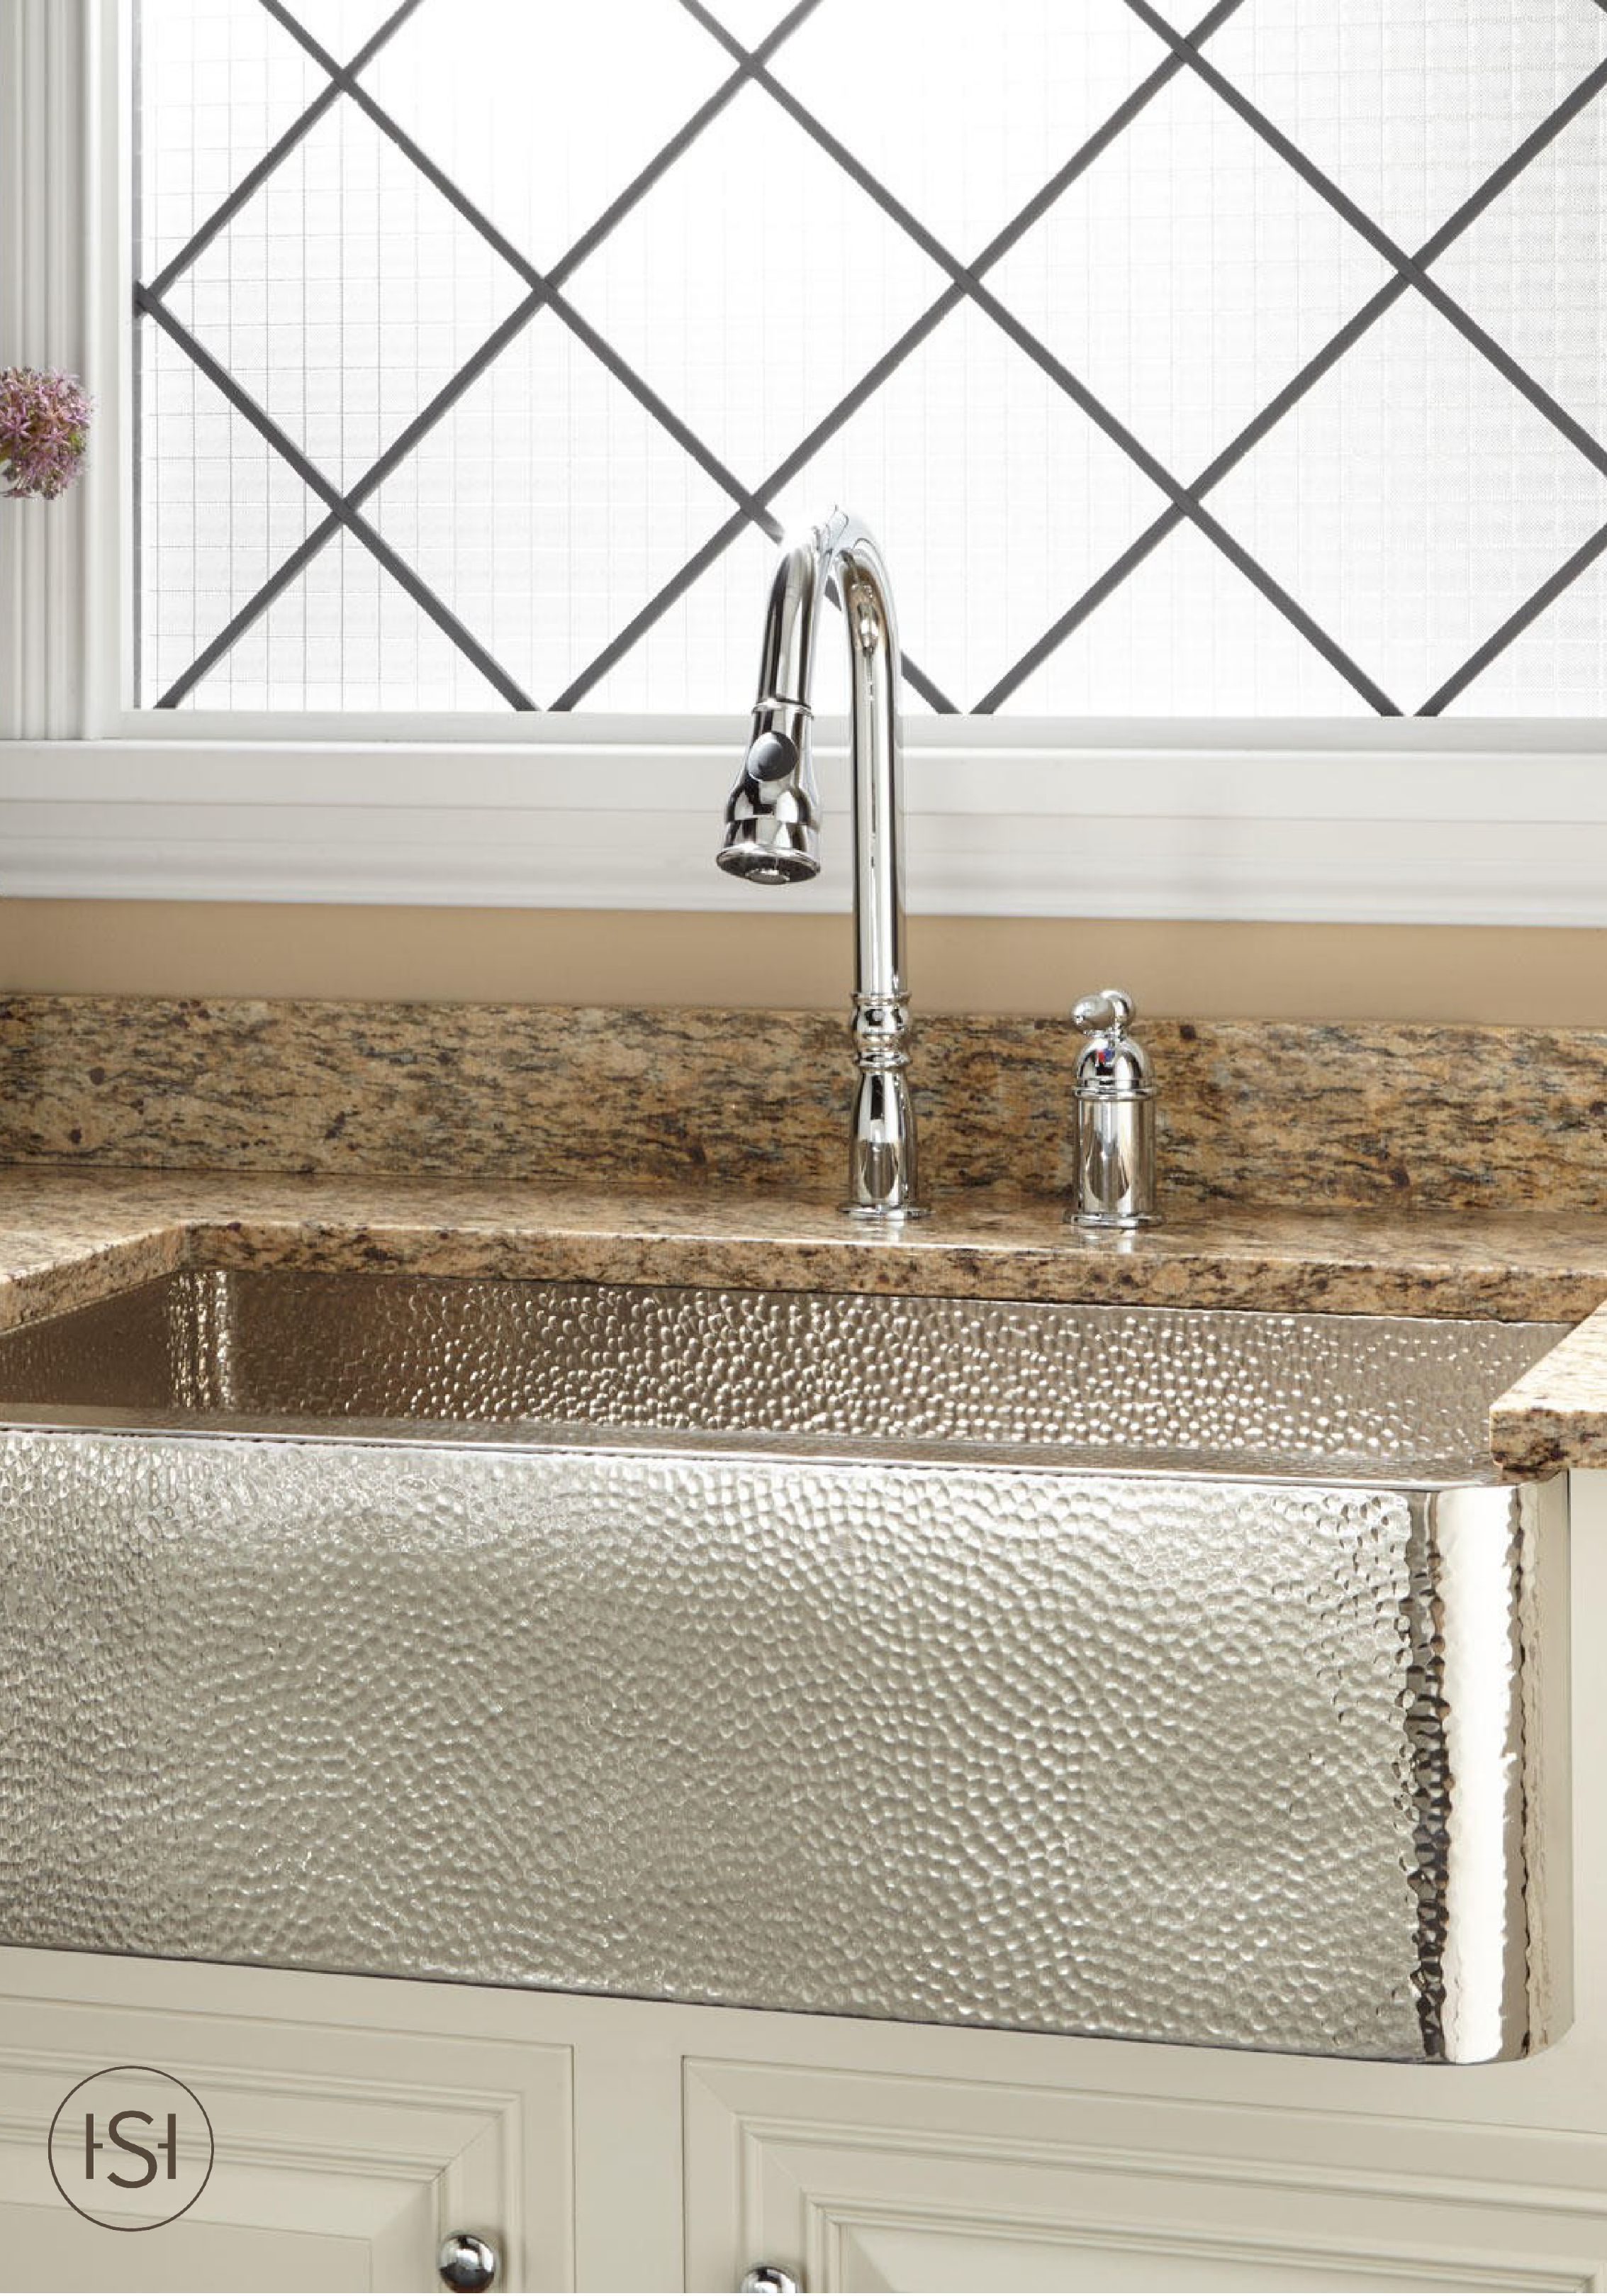 With Its Beautiful Nickel Plated Hammered Copper Details This Farmhouse Sink Is A W Copper Farmhouse Sinks Stainless Steel Farmhouse Sink Kitchen Sink Remodel